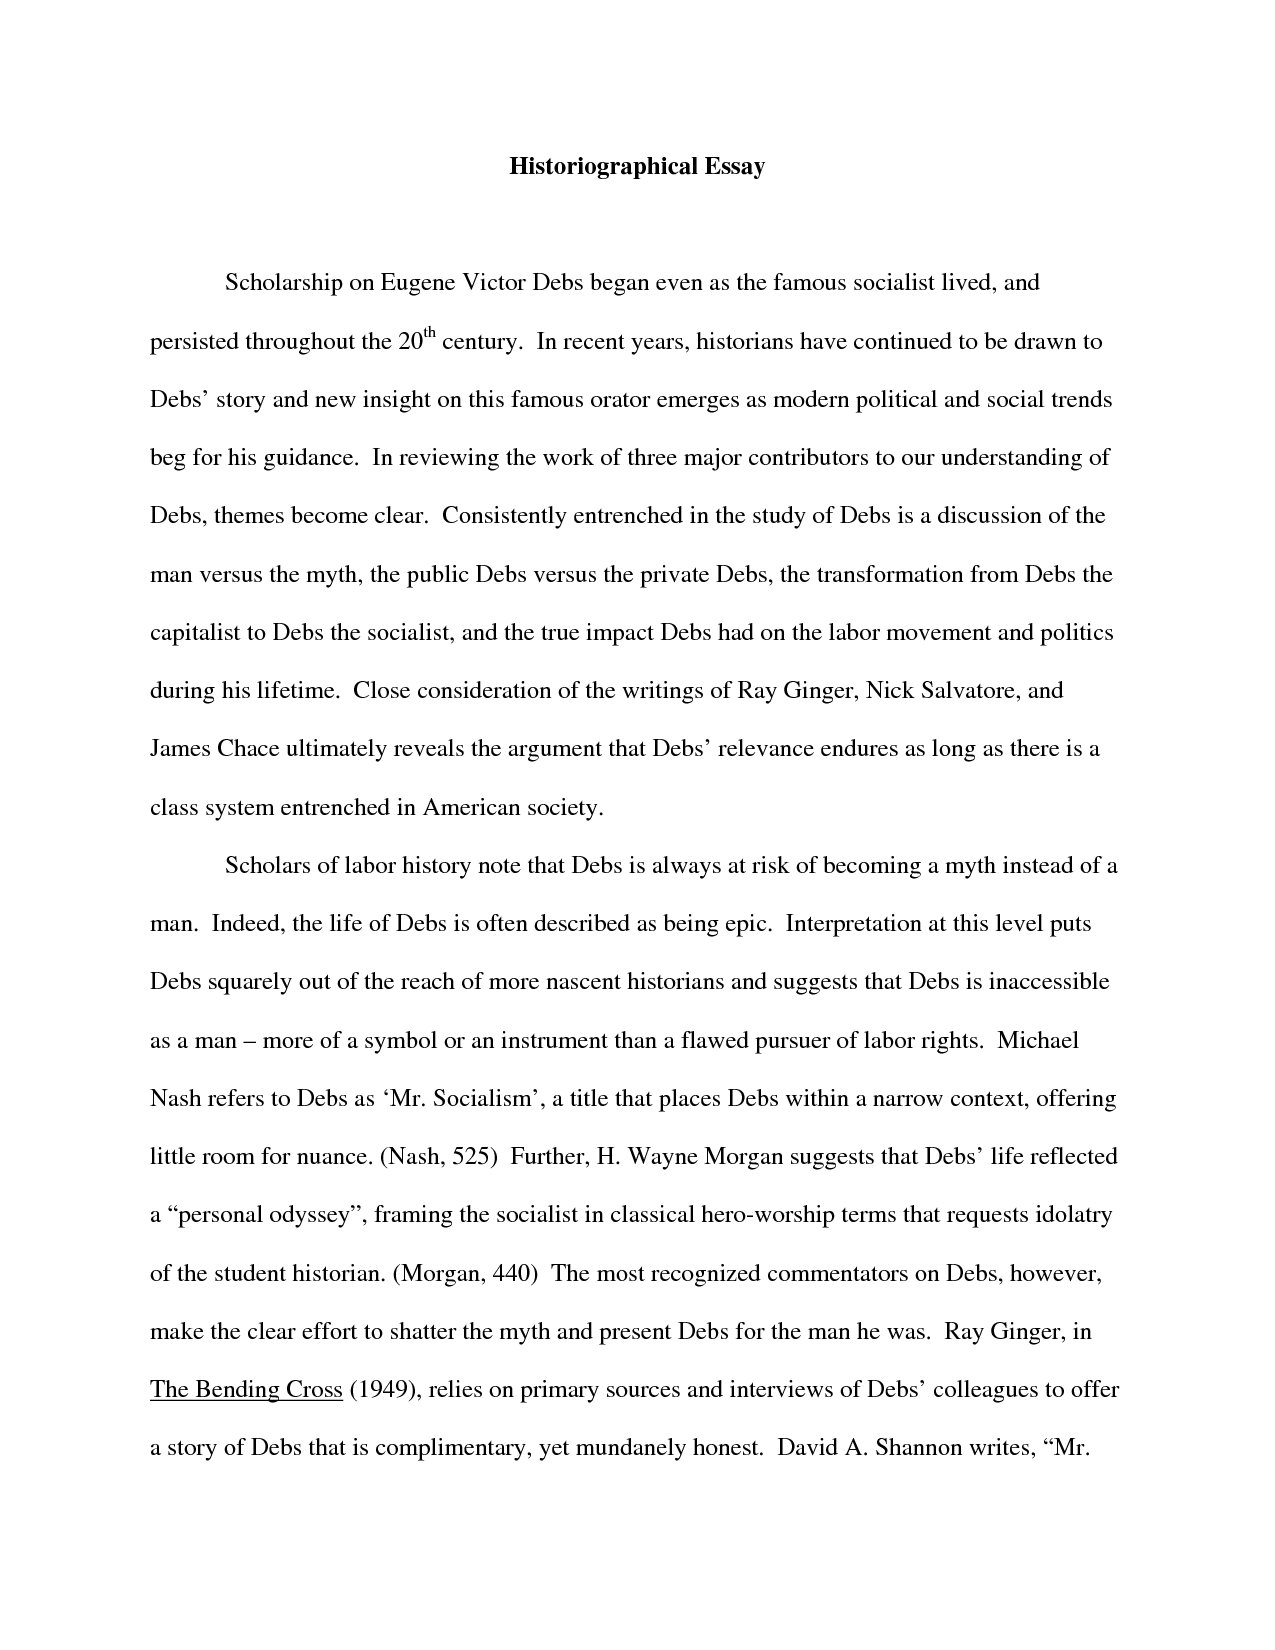 001 Epeiooslsh Essay Example Remarkable Historiographical Sample Historiography Full